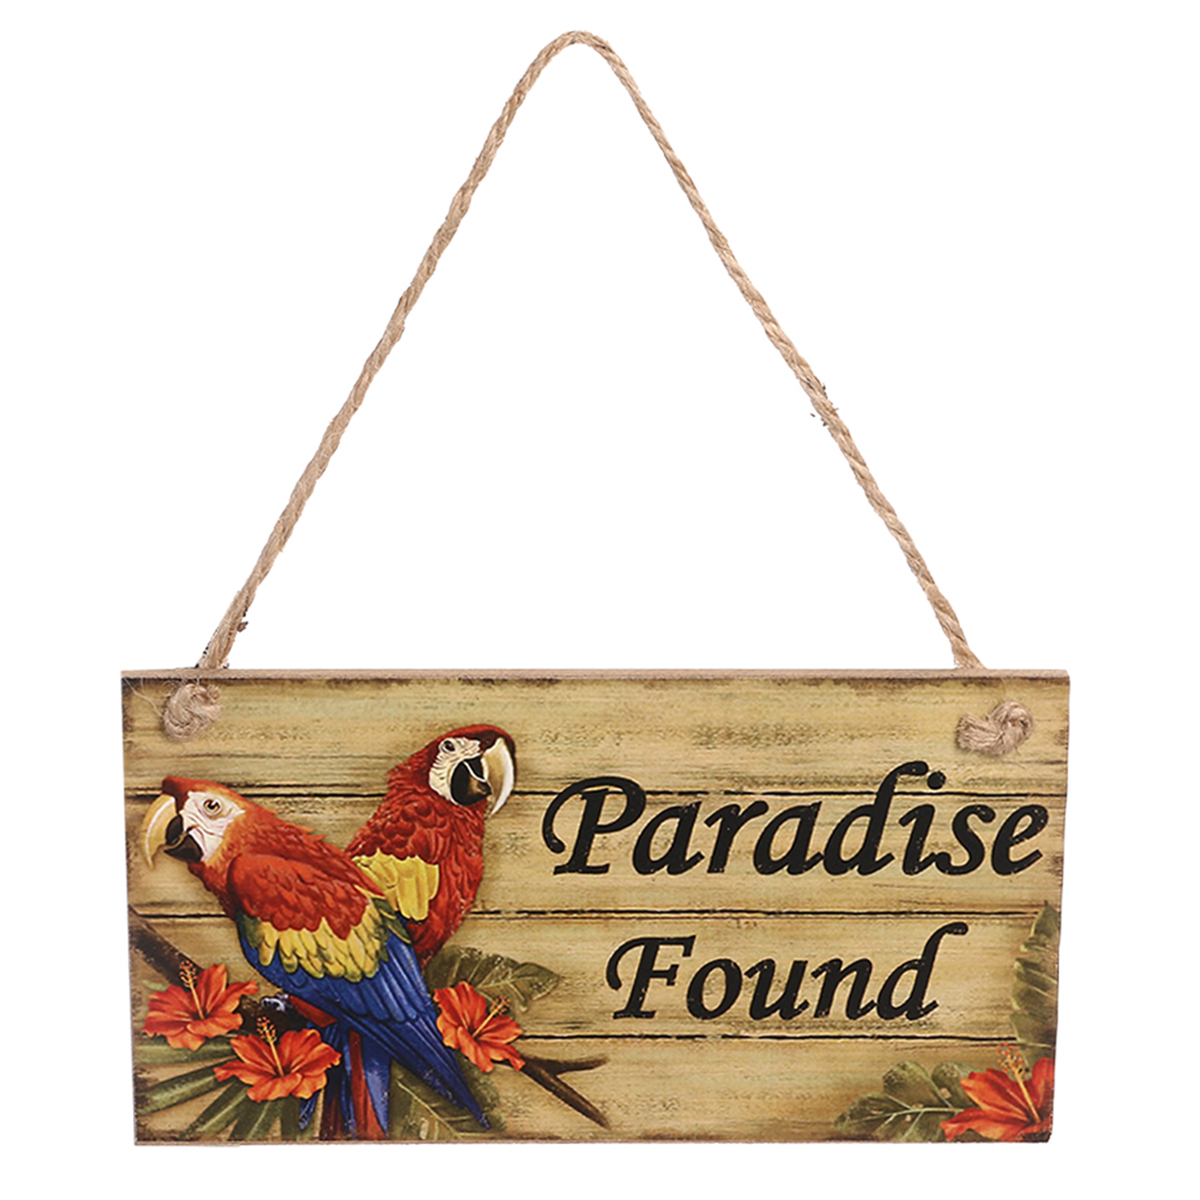 Vintage Home Decor Online Stores: Aliexpress.com : Buy Hawaii Beach Themed Party Paradise